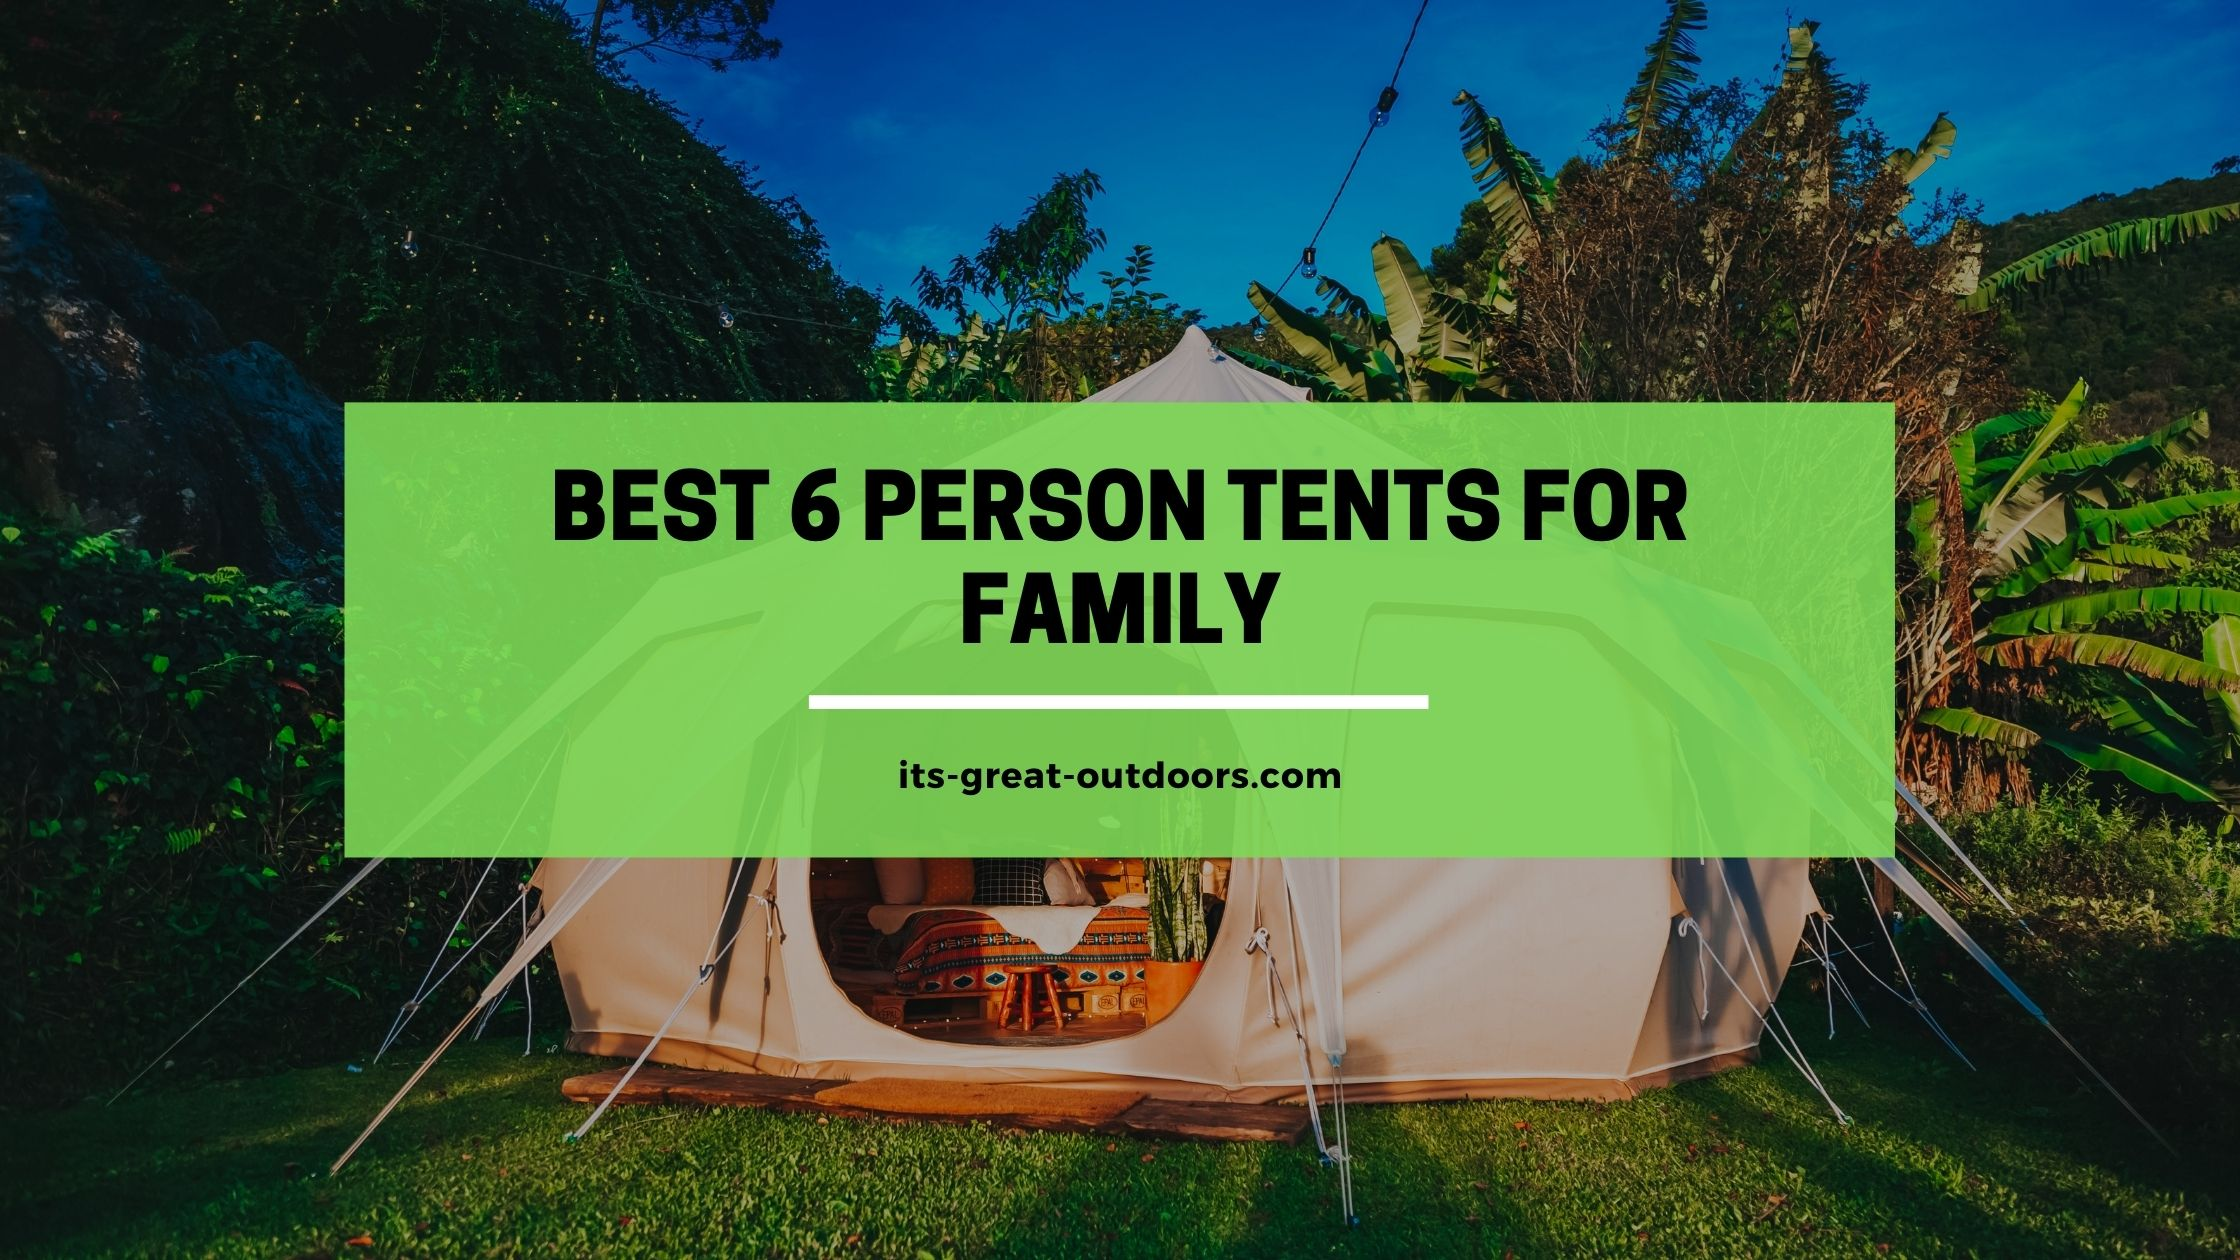 Best 6 Person Tents for Family